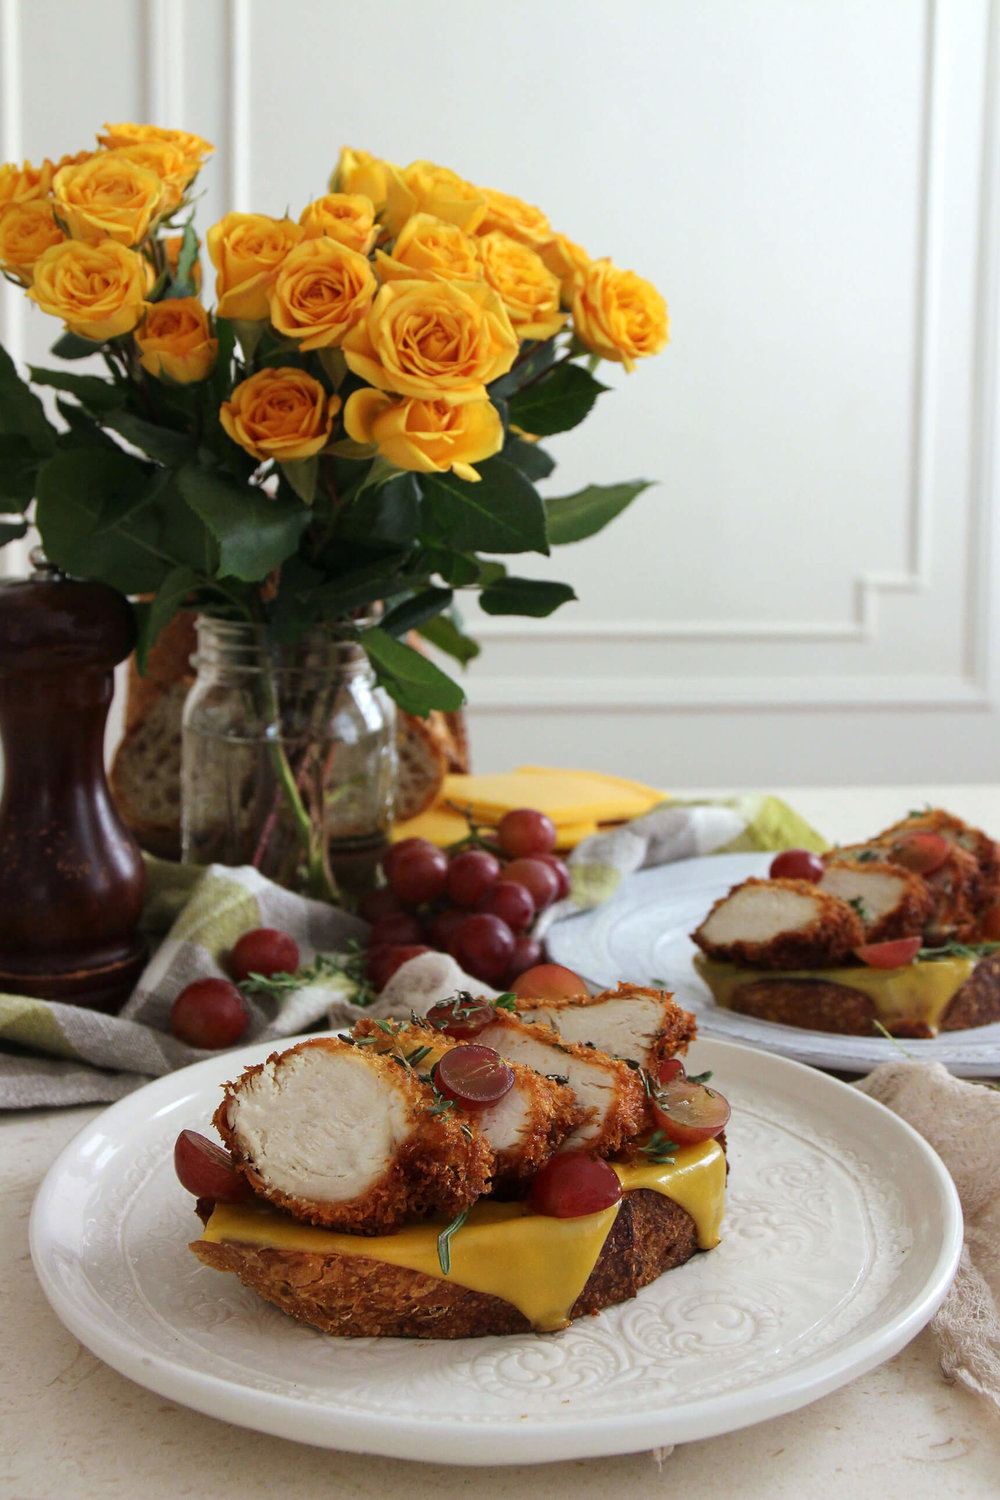 Fried Chicken And American Cheese Open-Faced Sandwich